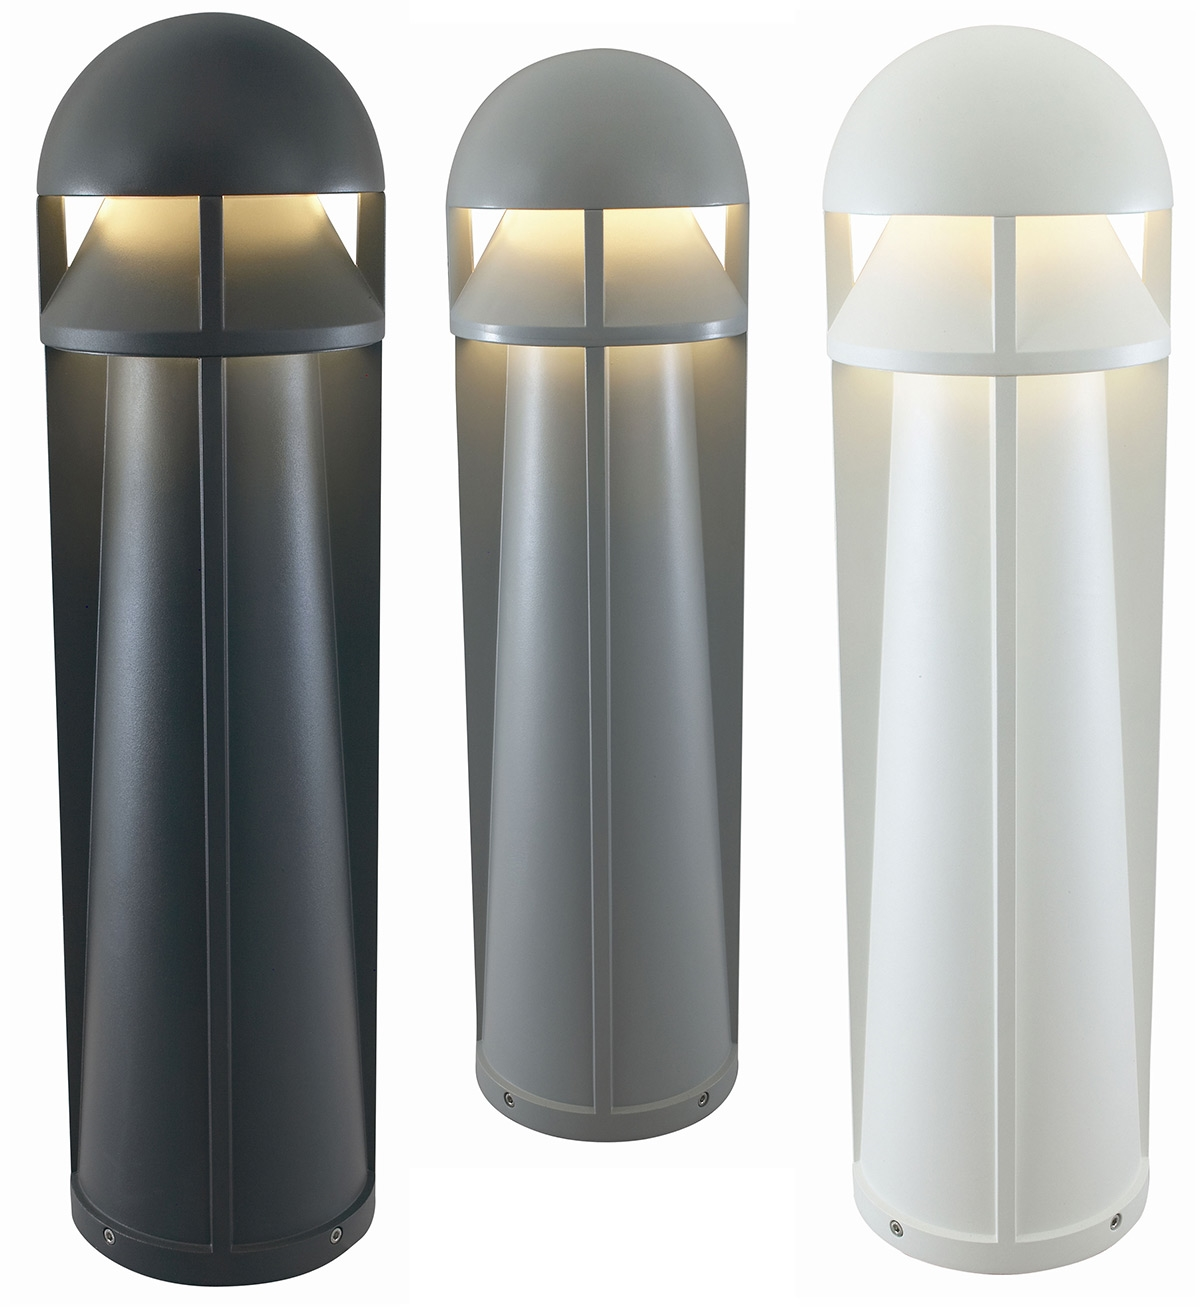 Rugged commercial bollard hit or cfl lamps mozeypictures Choice Image